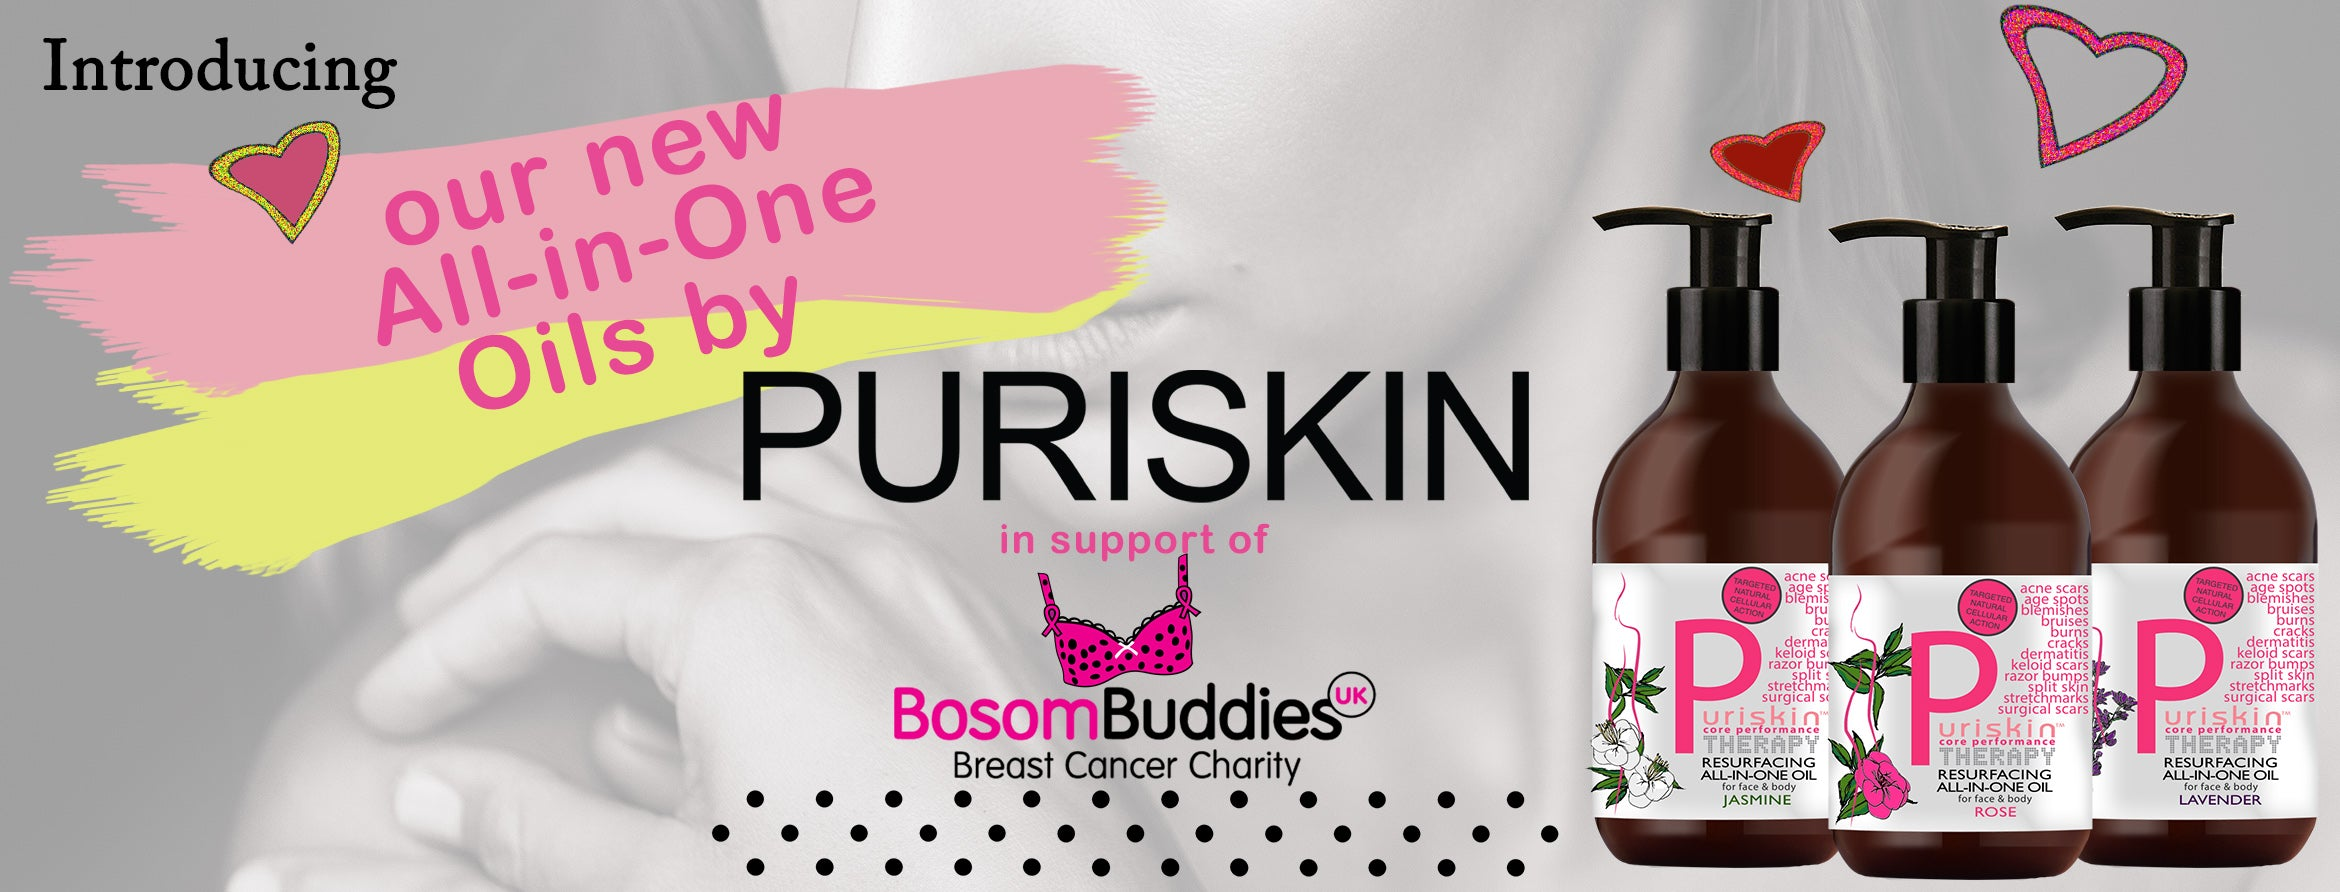 Skincare For Cancer - Puriskin in support of Bosombuddiesuk